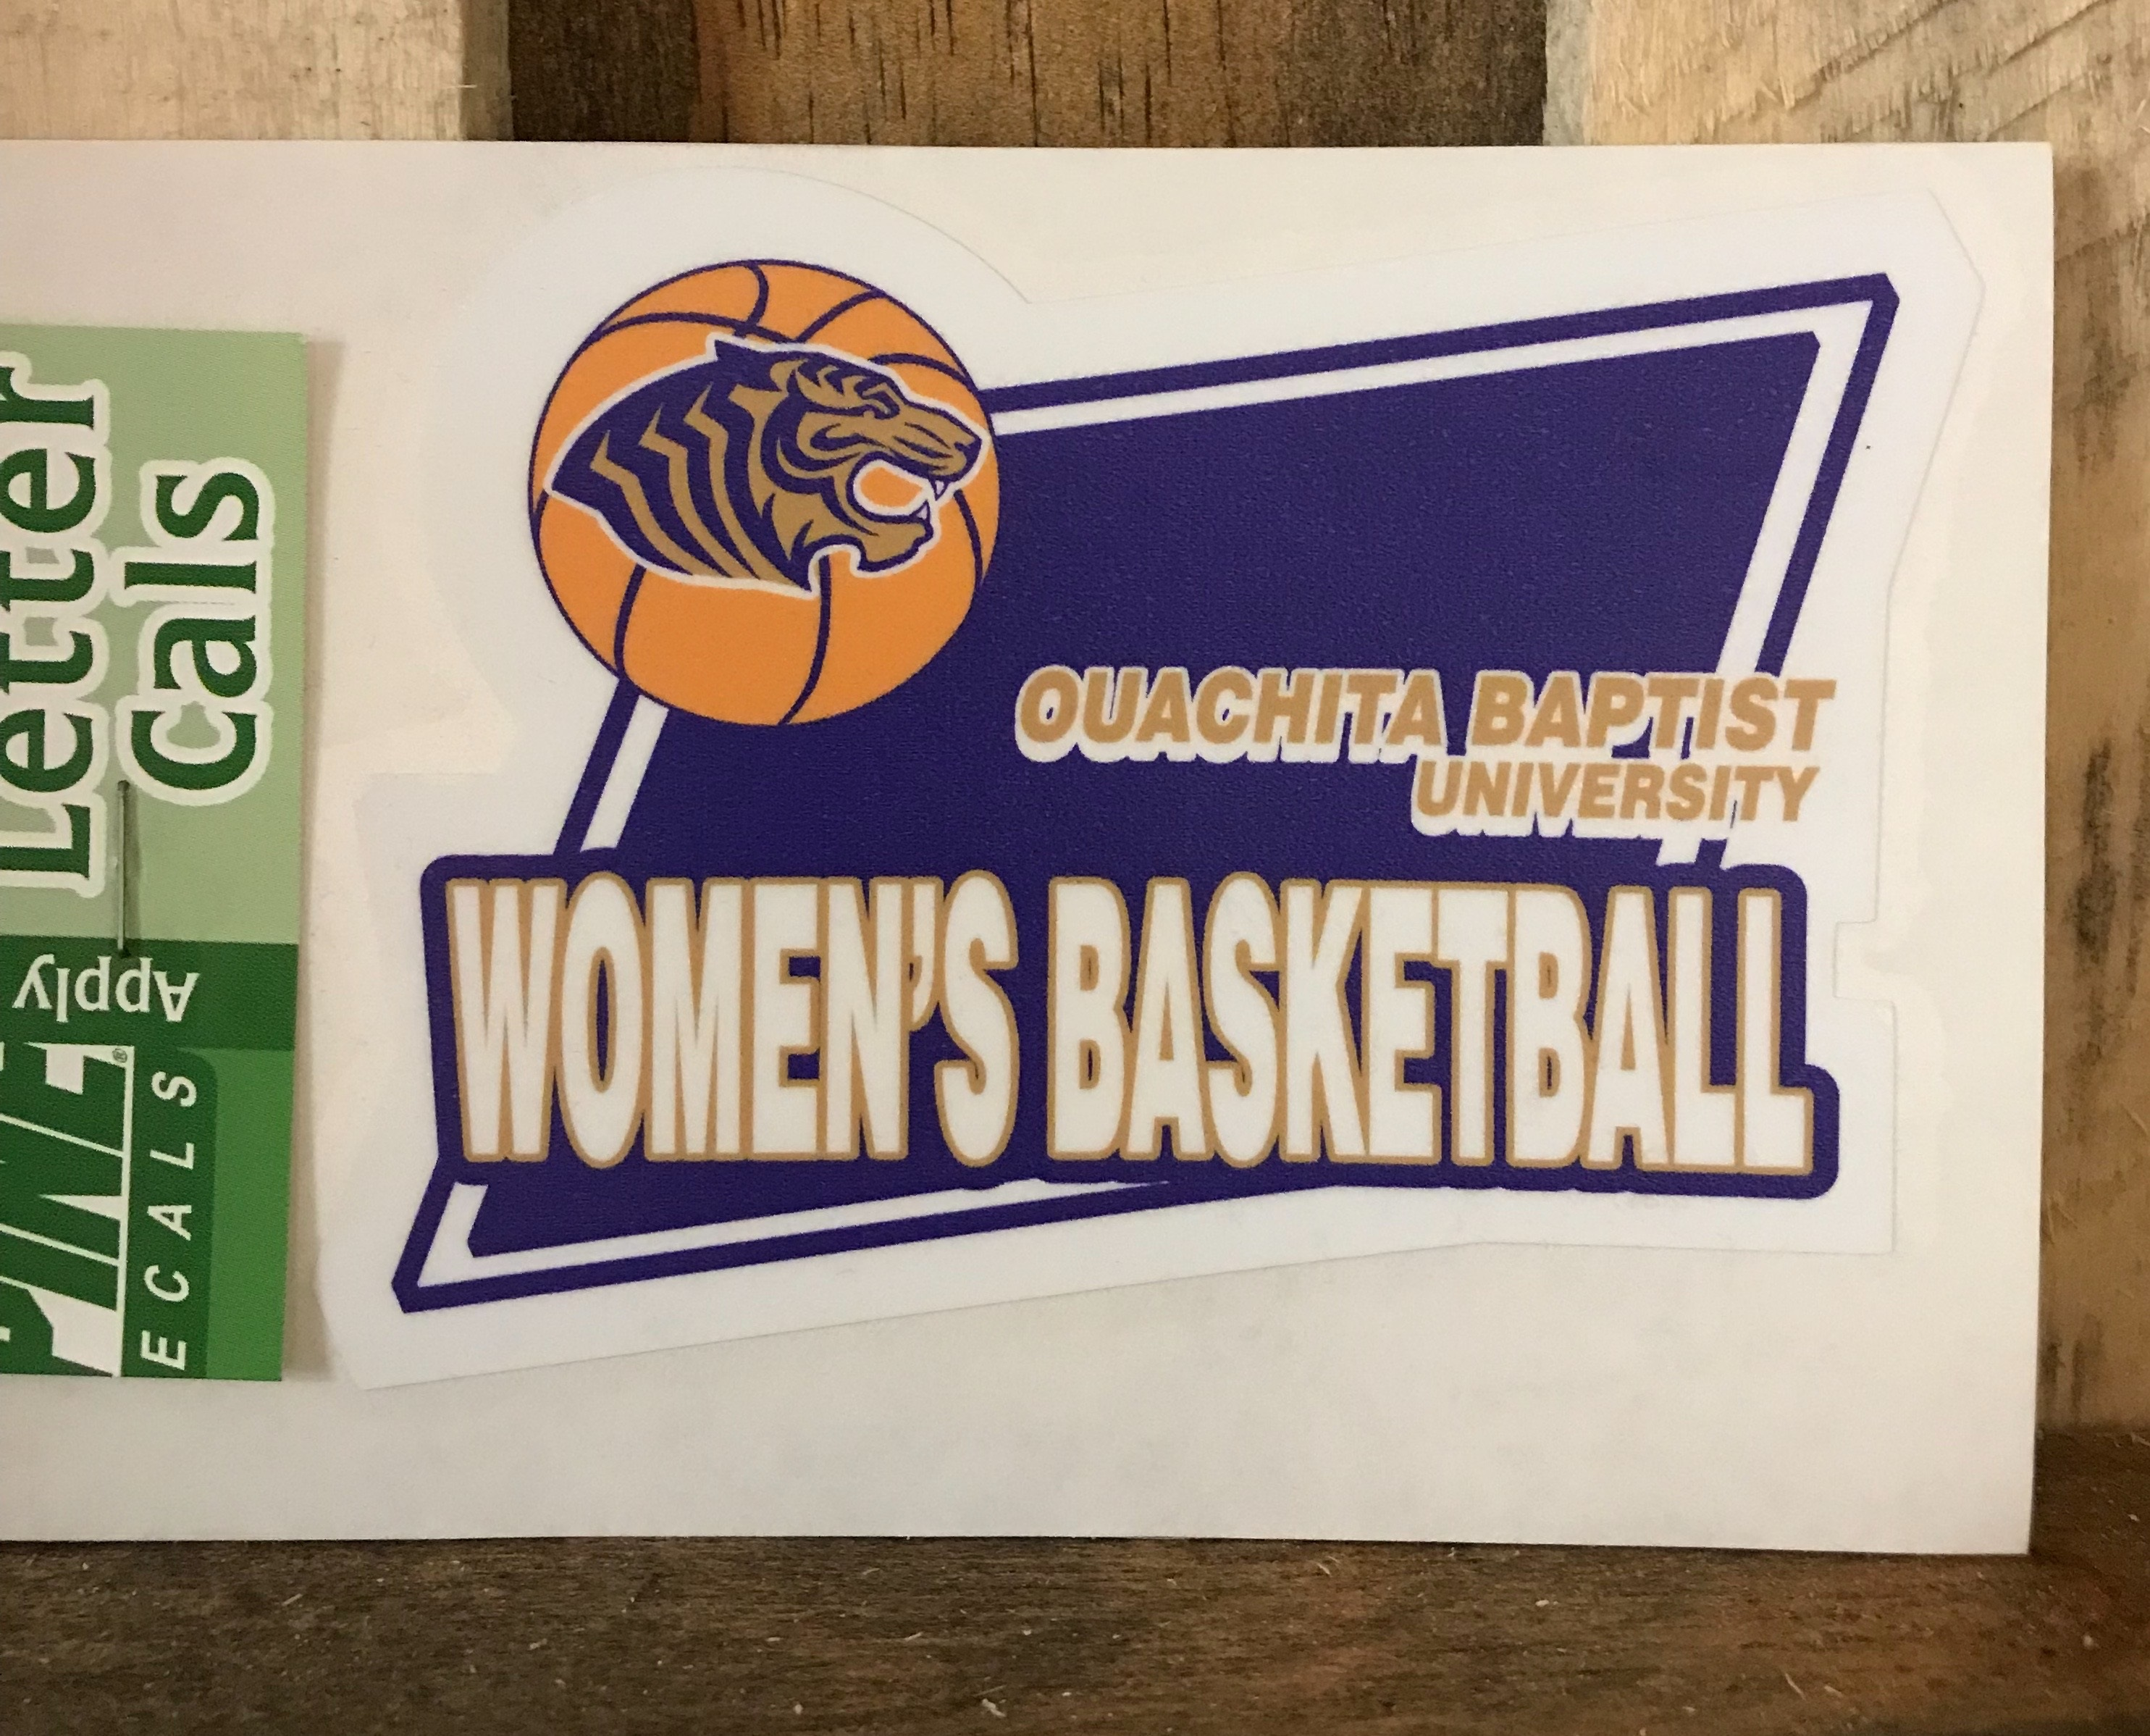 OBU WOMEN'S BASKETBALL CUT LETTER DECAL